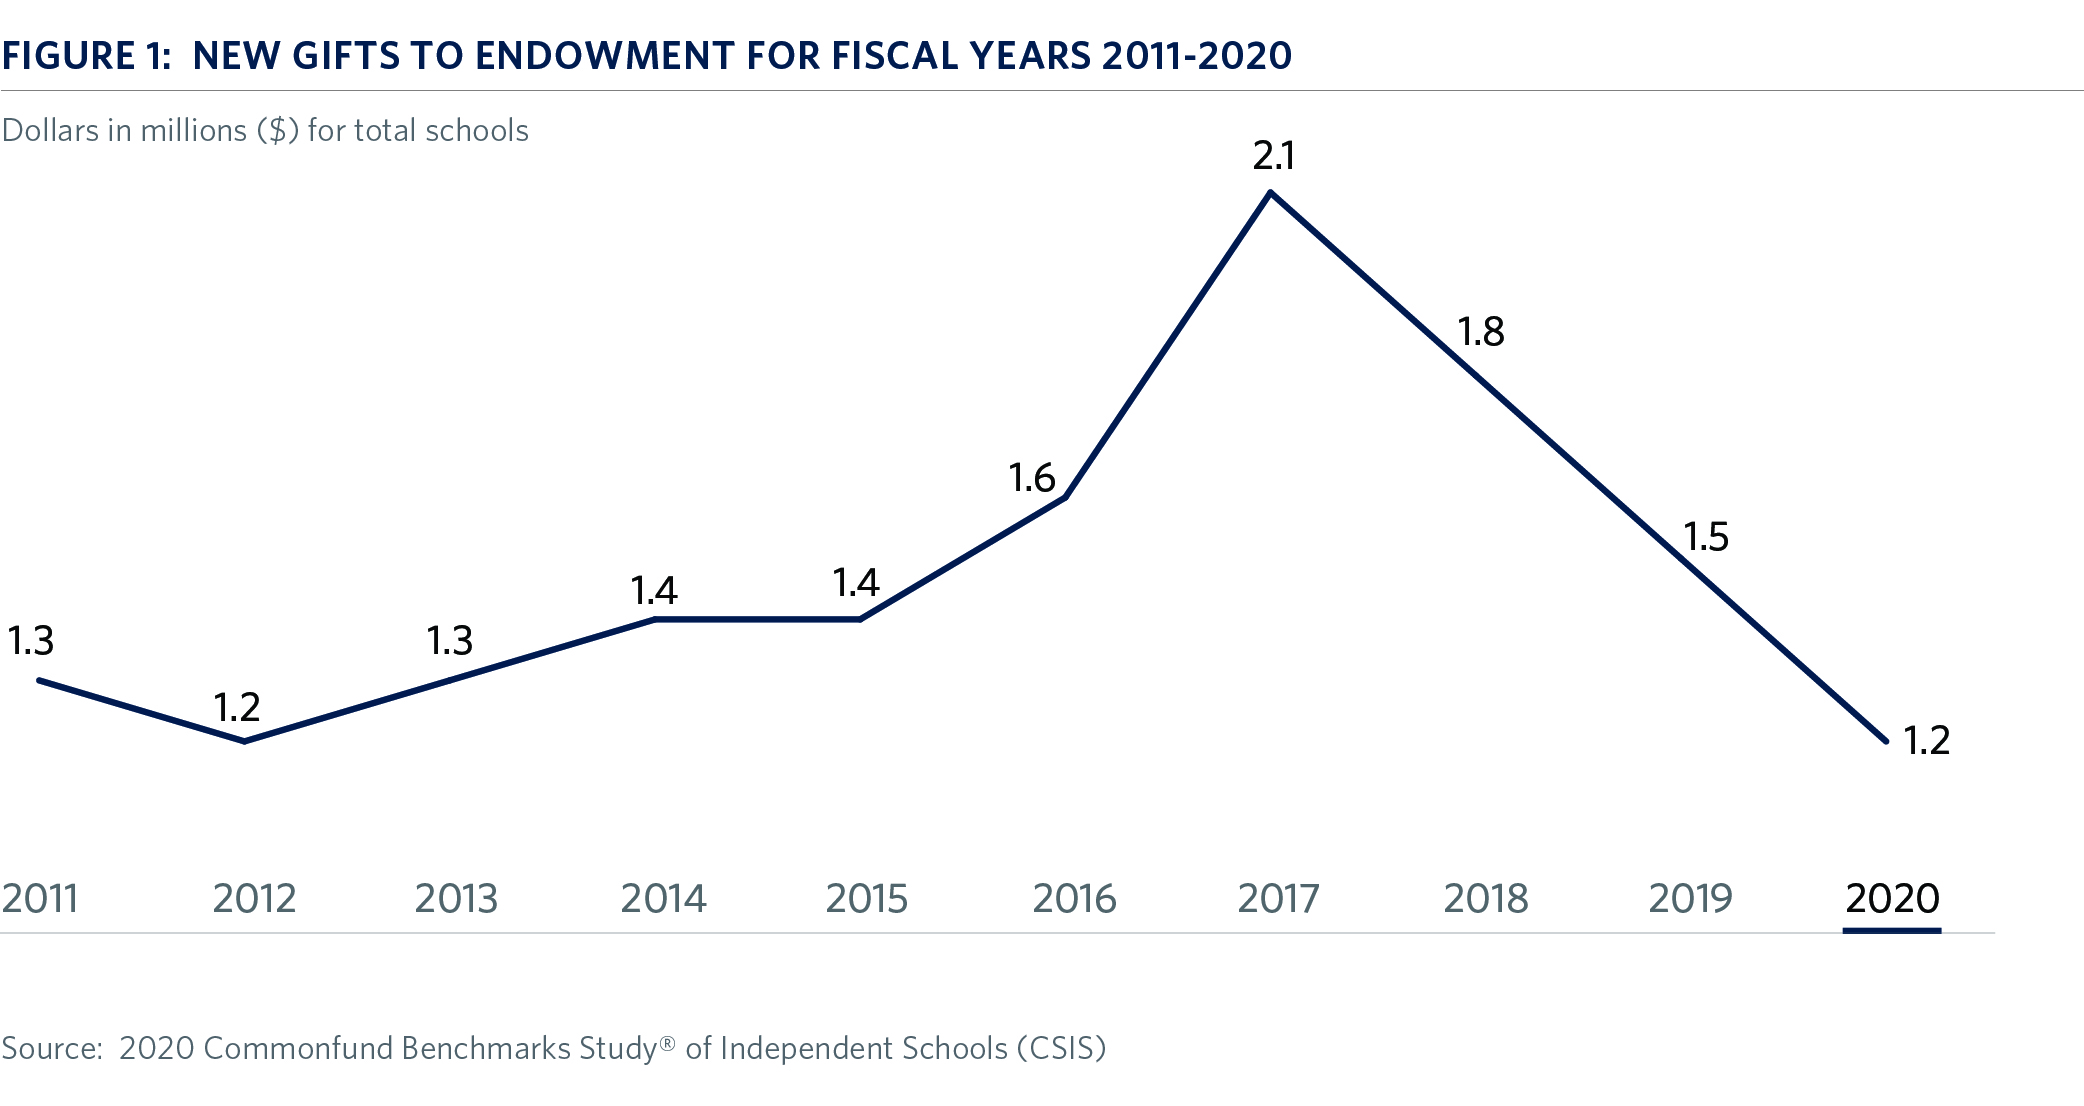 img-figure-1-new-gifts-endowment-fy2011-2020